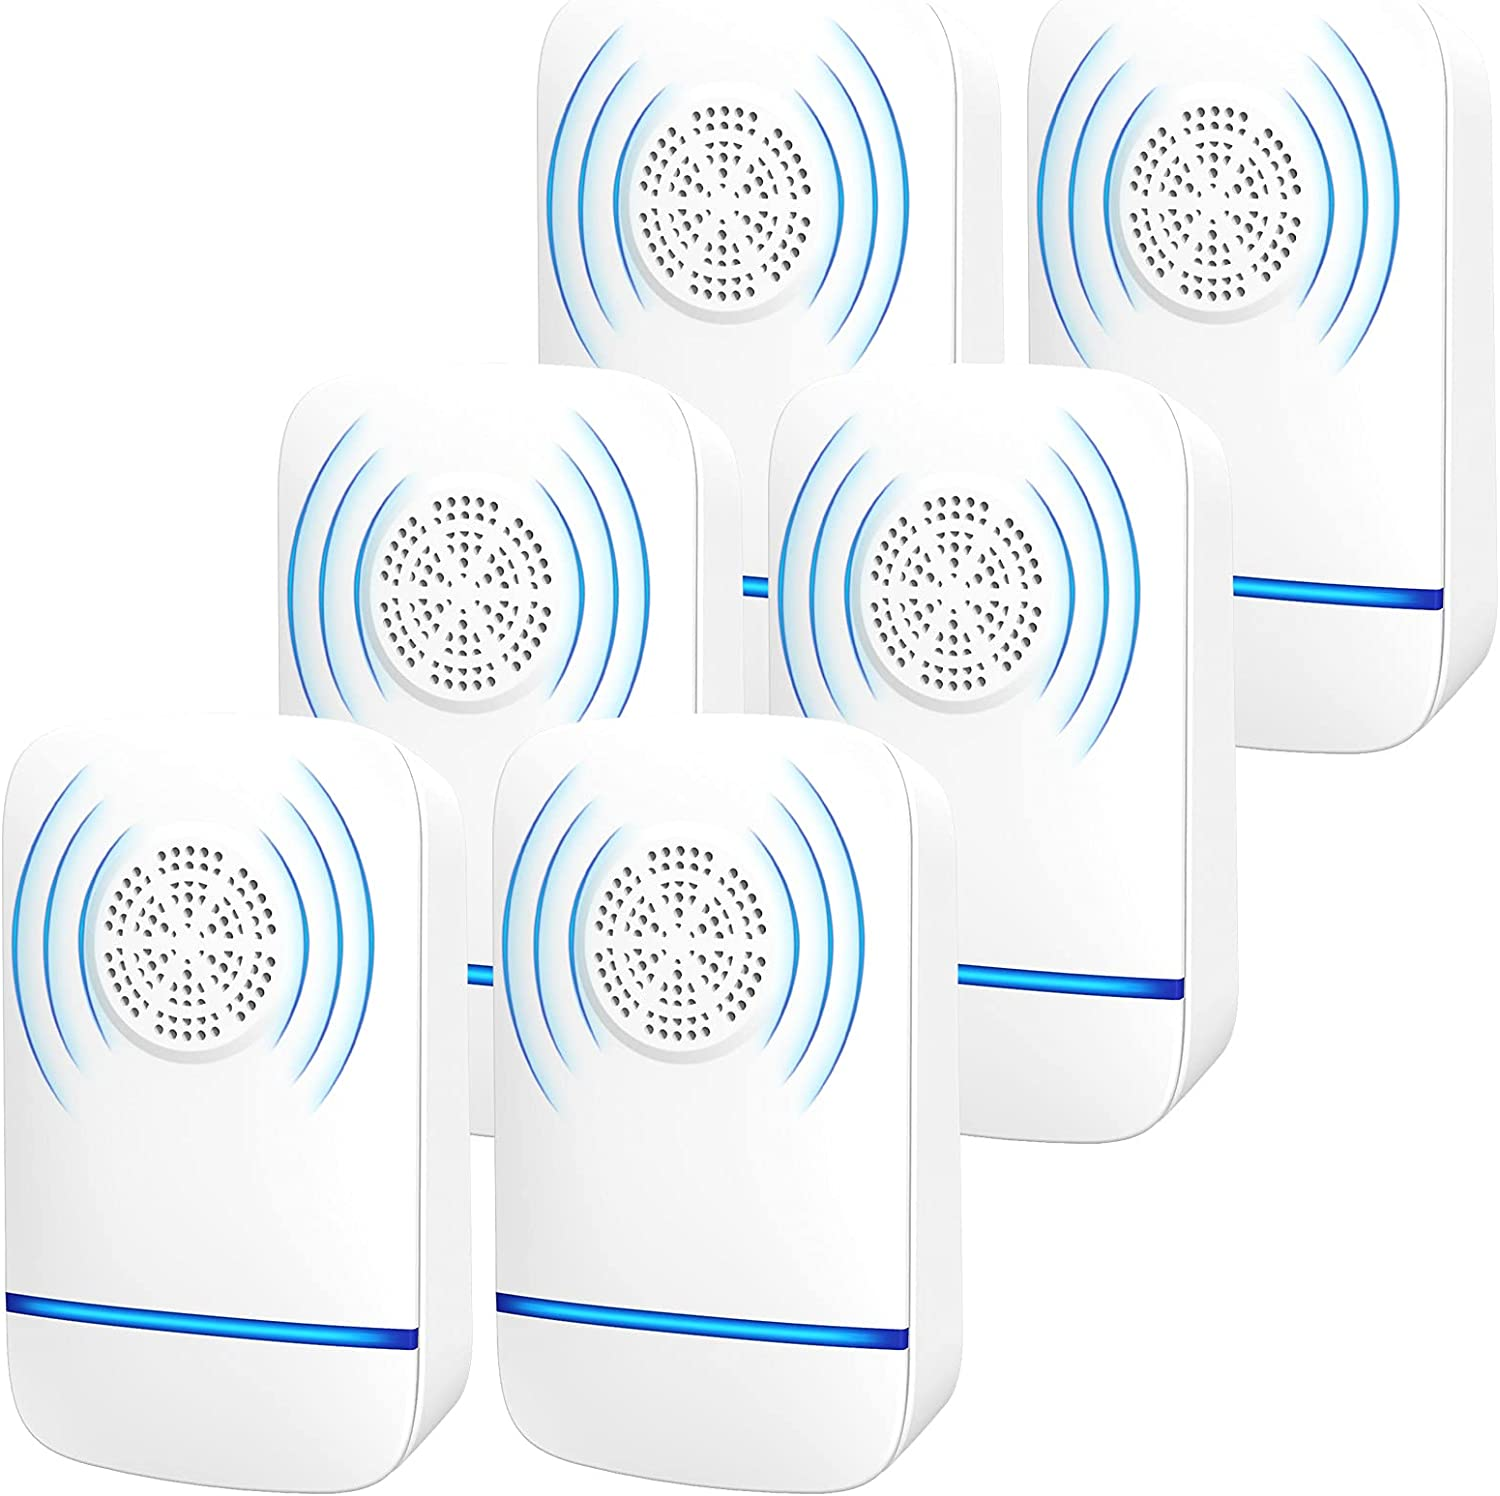 Ultrasonic Pest Repeller, 【6 Pack】 Electronic Mouse Repellent, Home Defense Pest Control Plug in Indoor house, Roach killer for Rodents Mice Mosquito Roach Spider Ants Termites Bee Moths Stink Bug